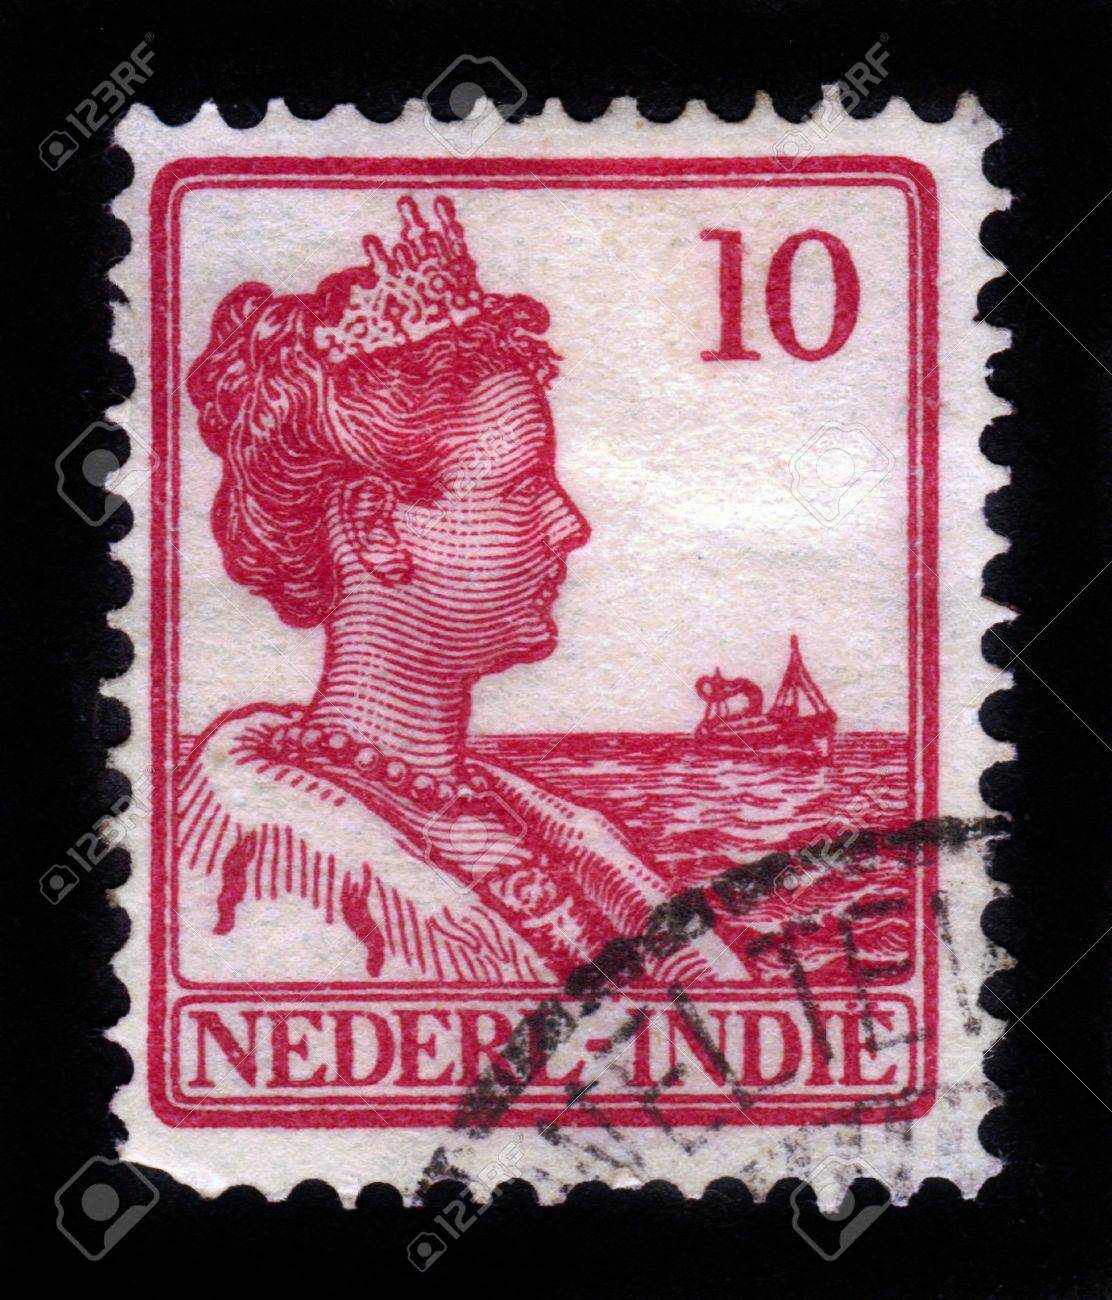 NETHERLANDS INDIES - CIRCA 1912: A stamp printed in the Netherlands Indies shows Queen Wilhelmina of the Netherlands (1880-1962), circa 1912 Stock Photo - 15485074